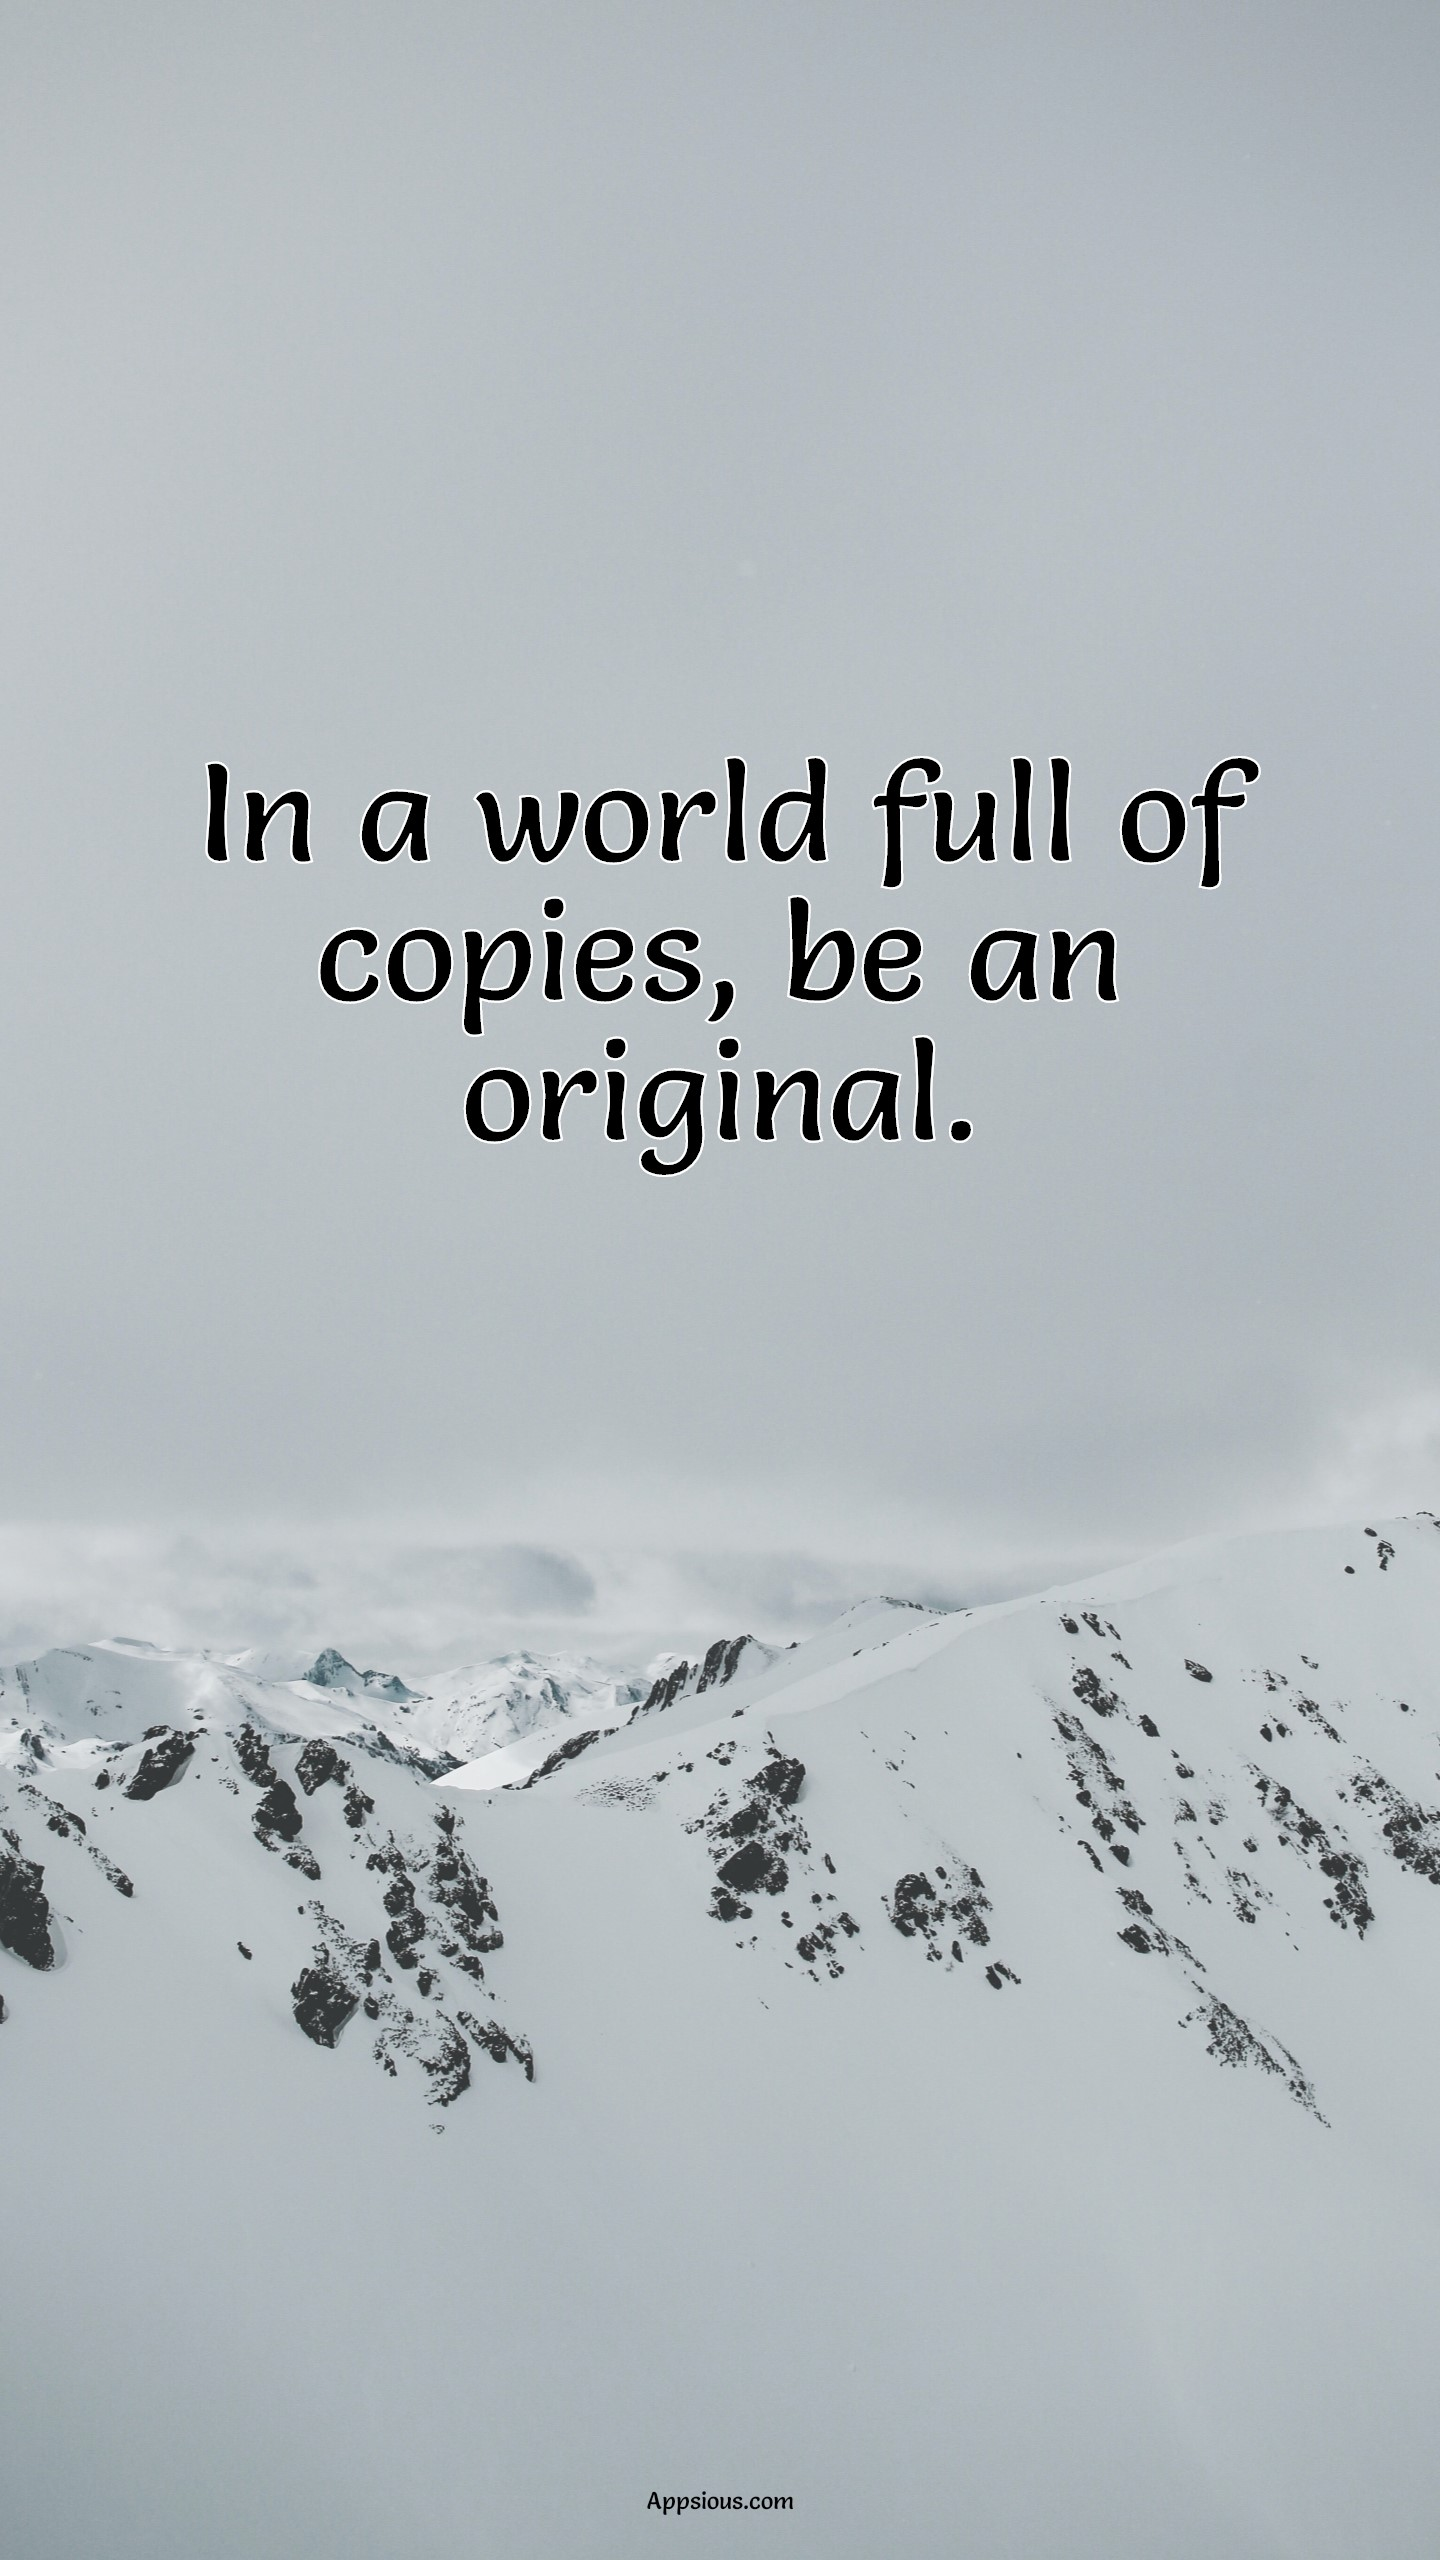 In a world full of copies, be an original.